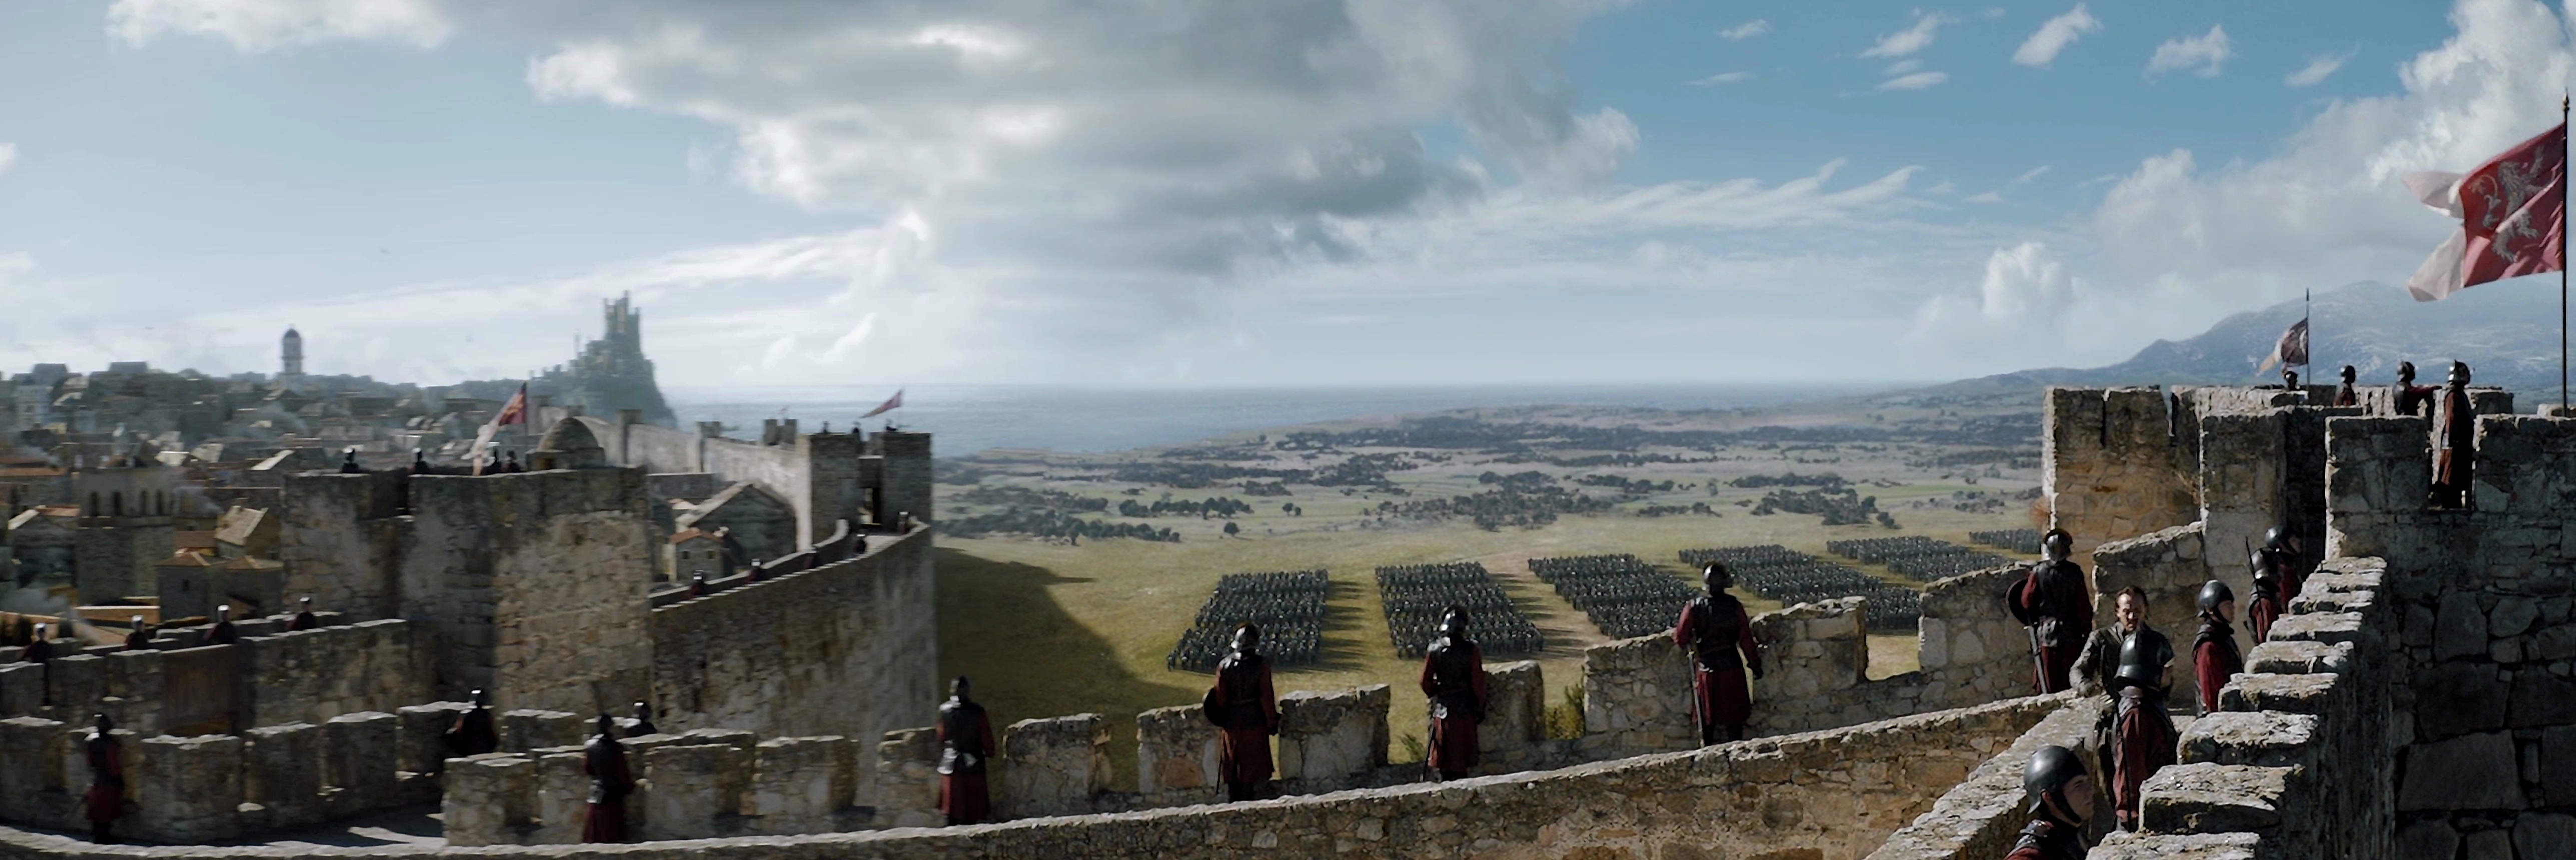 "Panorama of the King's Landing walls  in the Season 7 finale, ""The Dragon and the Wolf"""